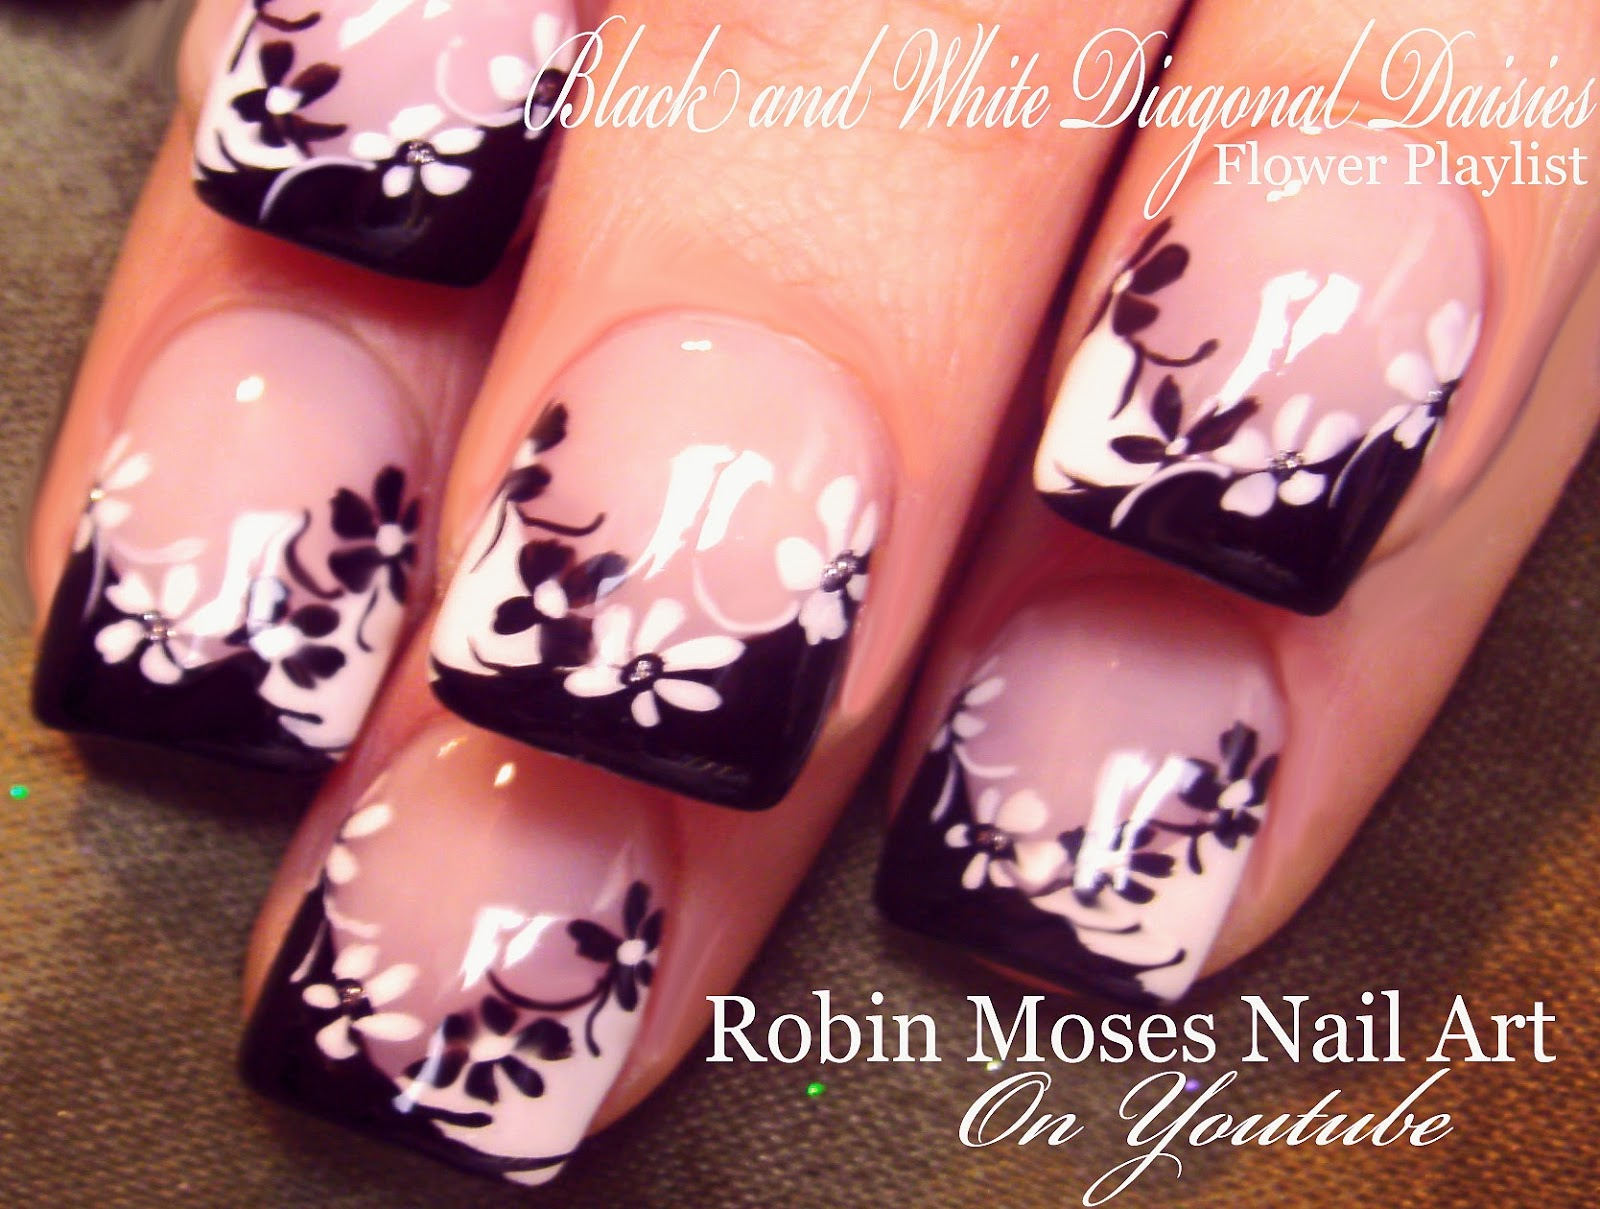 Robin moses nail art black and white daisies on a diagonal black and white daisies on a diagonal chevron tip black and white nails daisy nails flower nails diagonal french french tips black and white prinsesfo Gallery